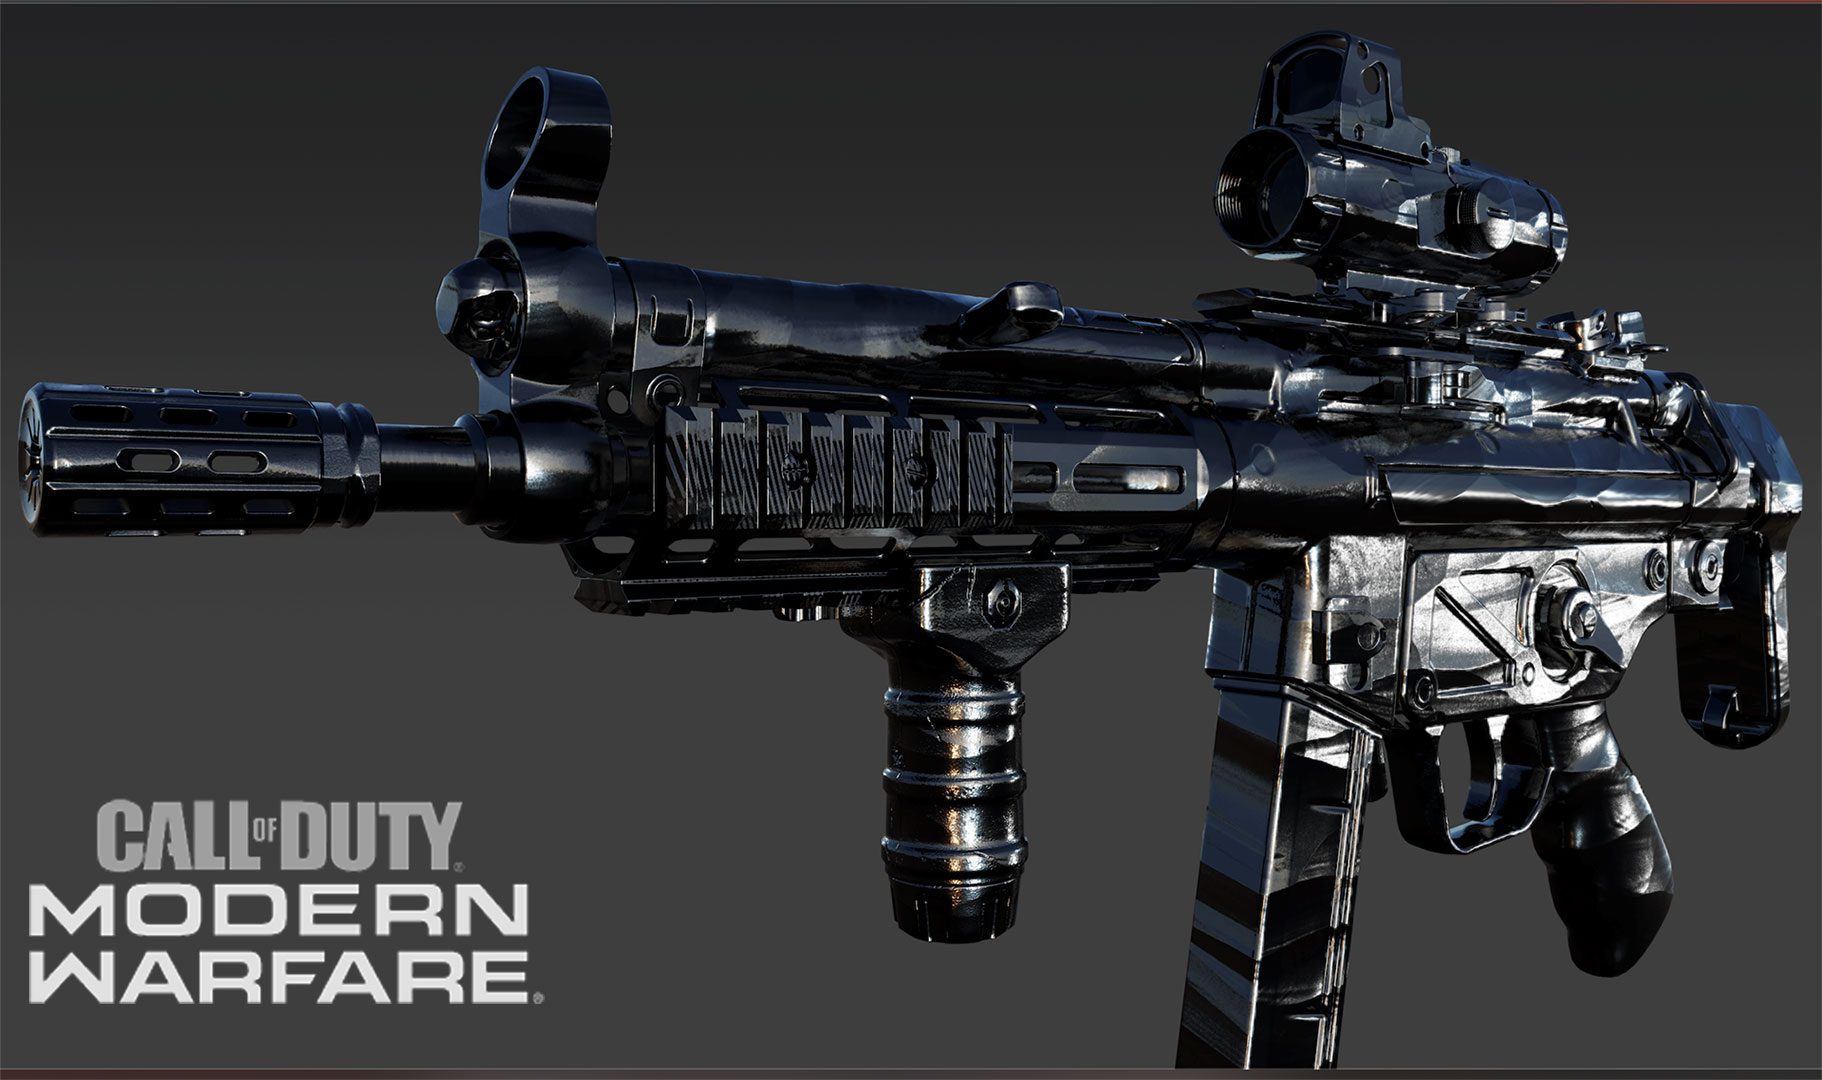 Become a True Weapon Master with Obsidian Camo, Now in Call of Duty:® Modern Warfare® - Image 1